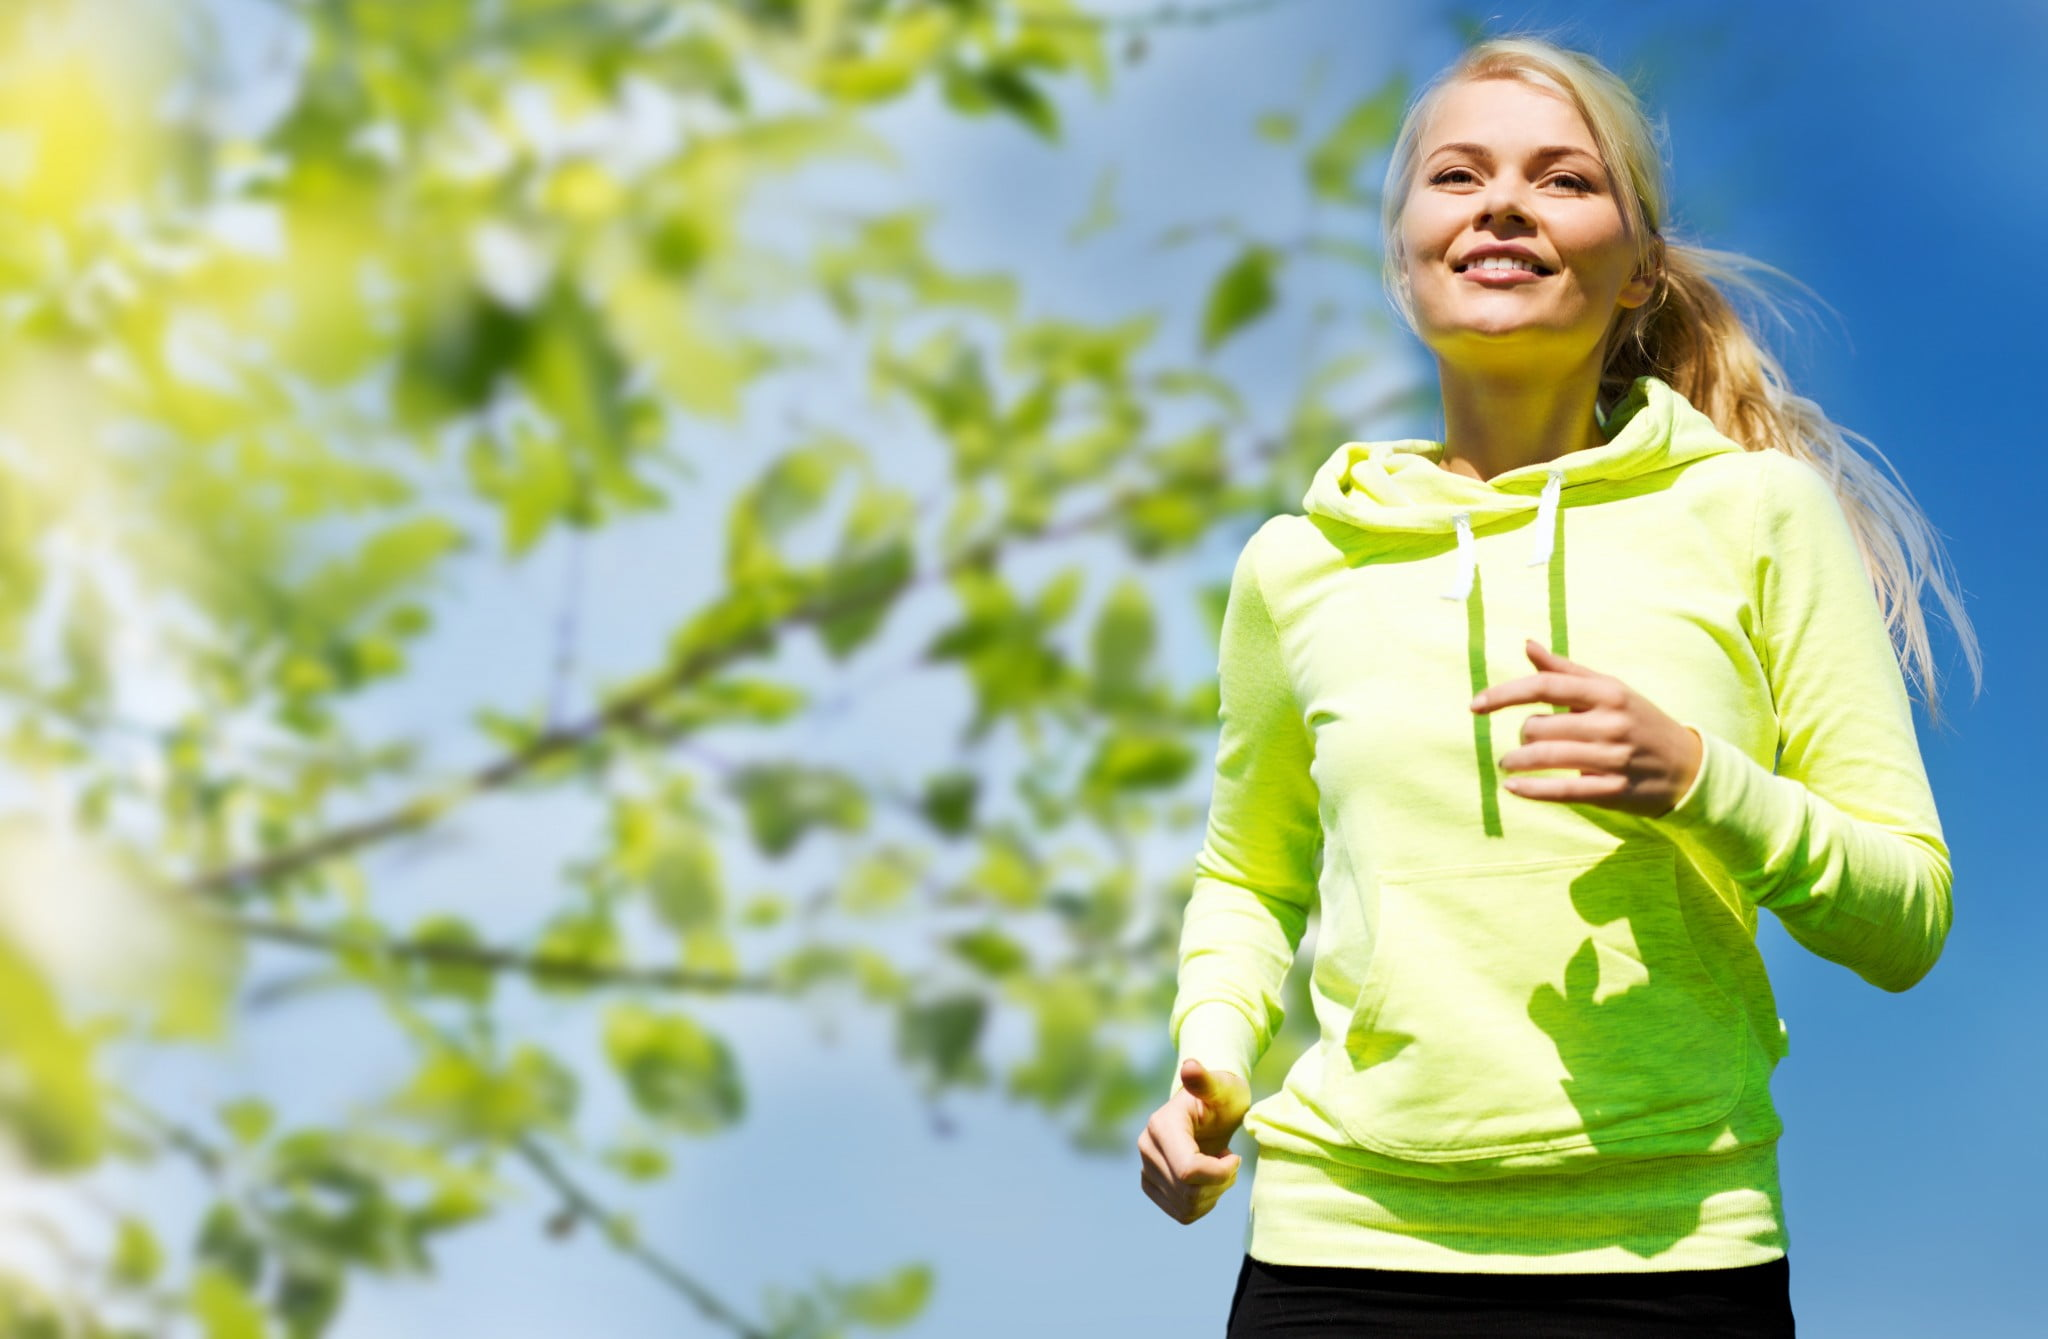 Go red for women: young woman jogging outdoors